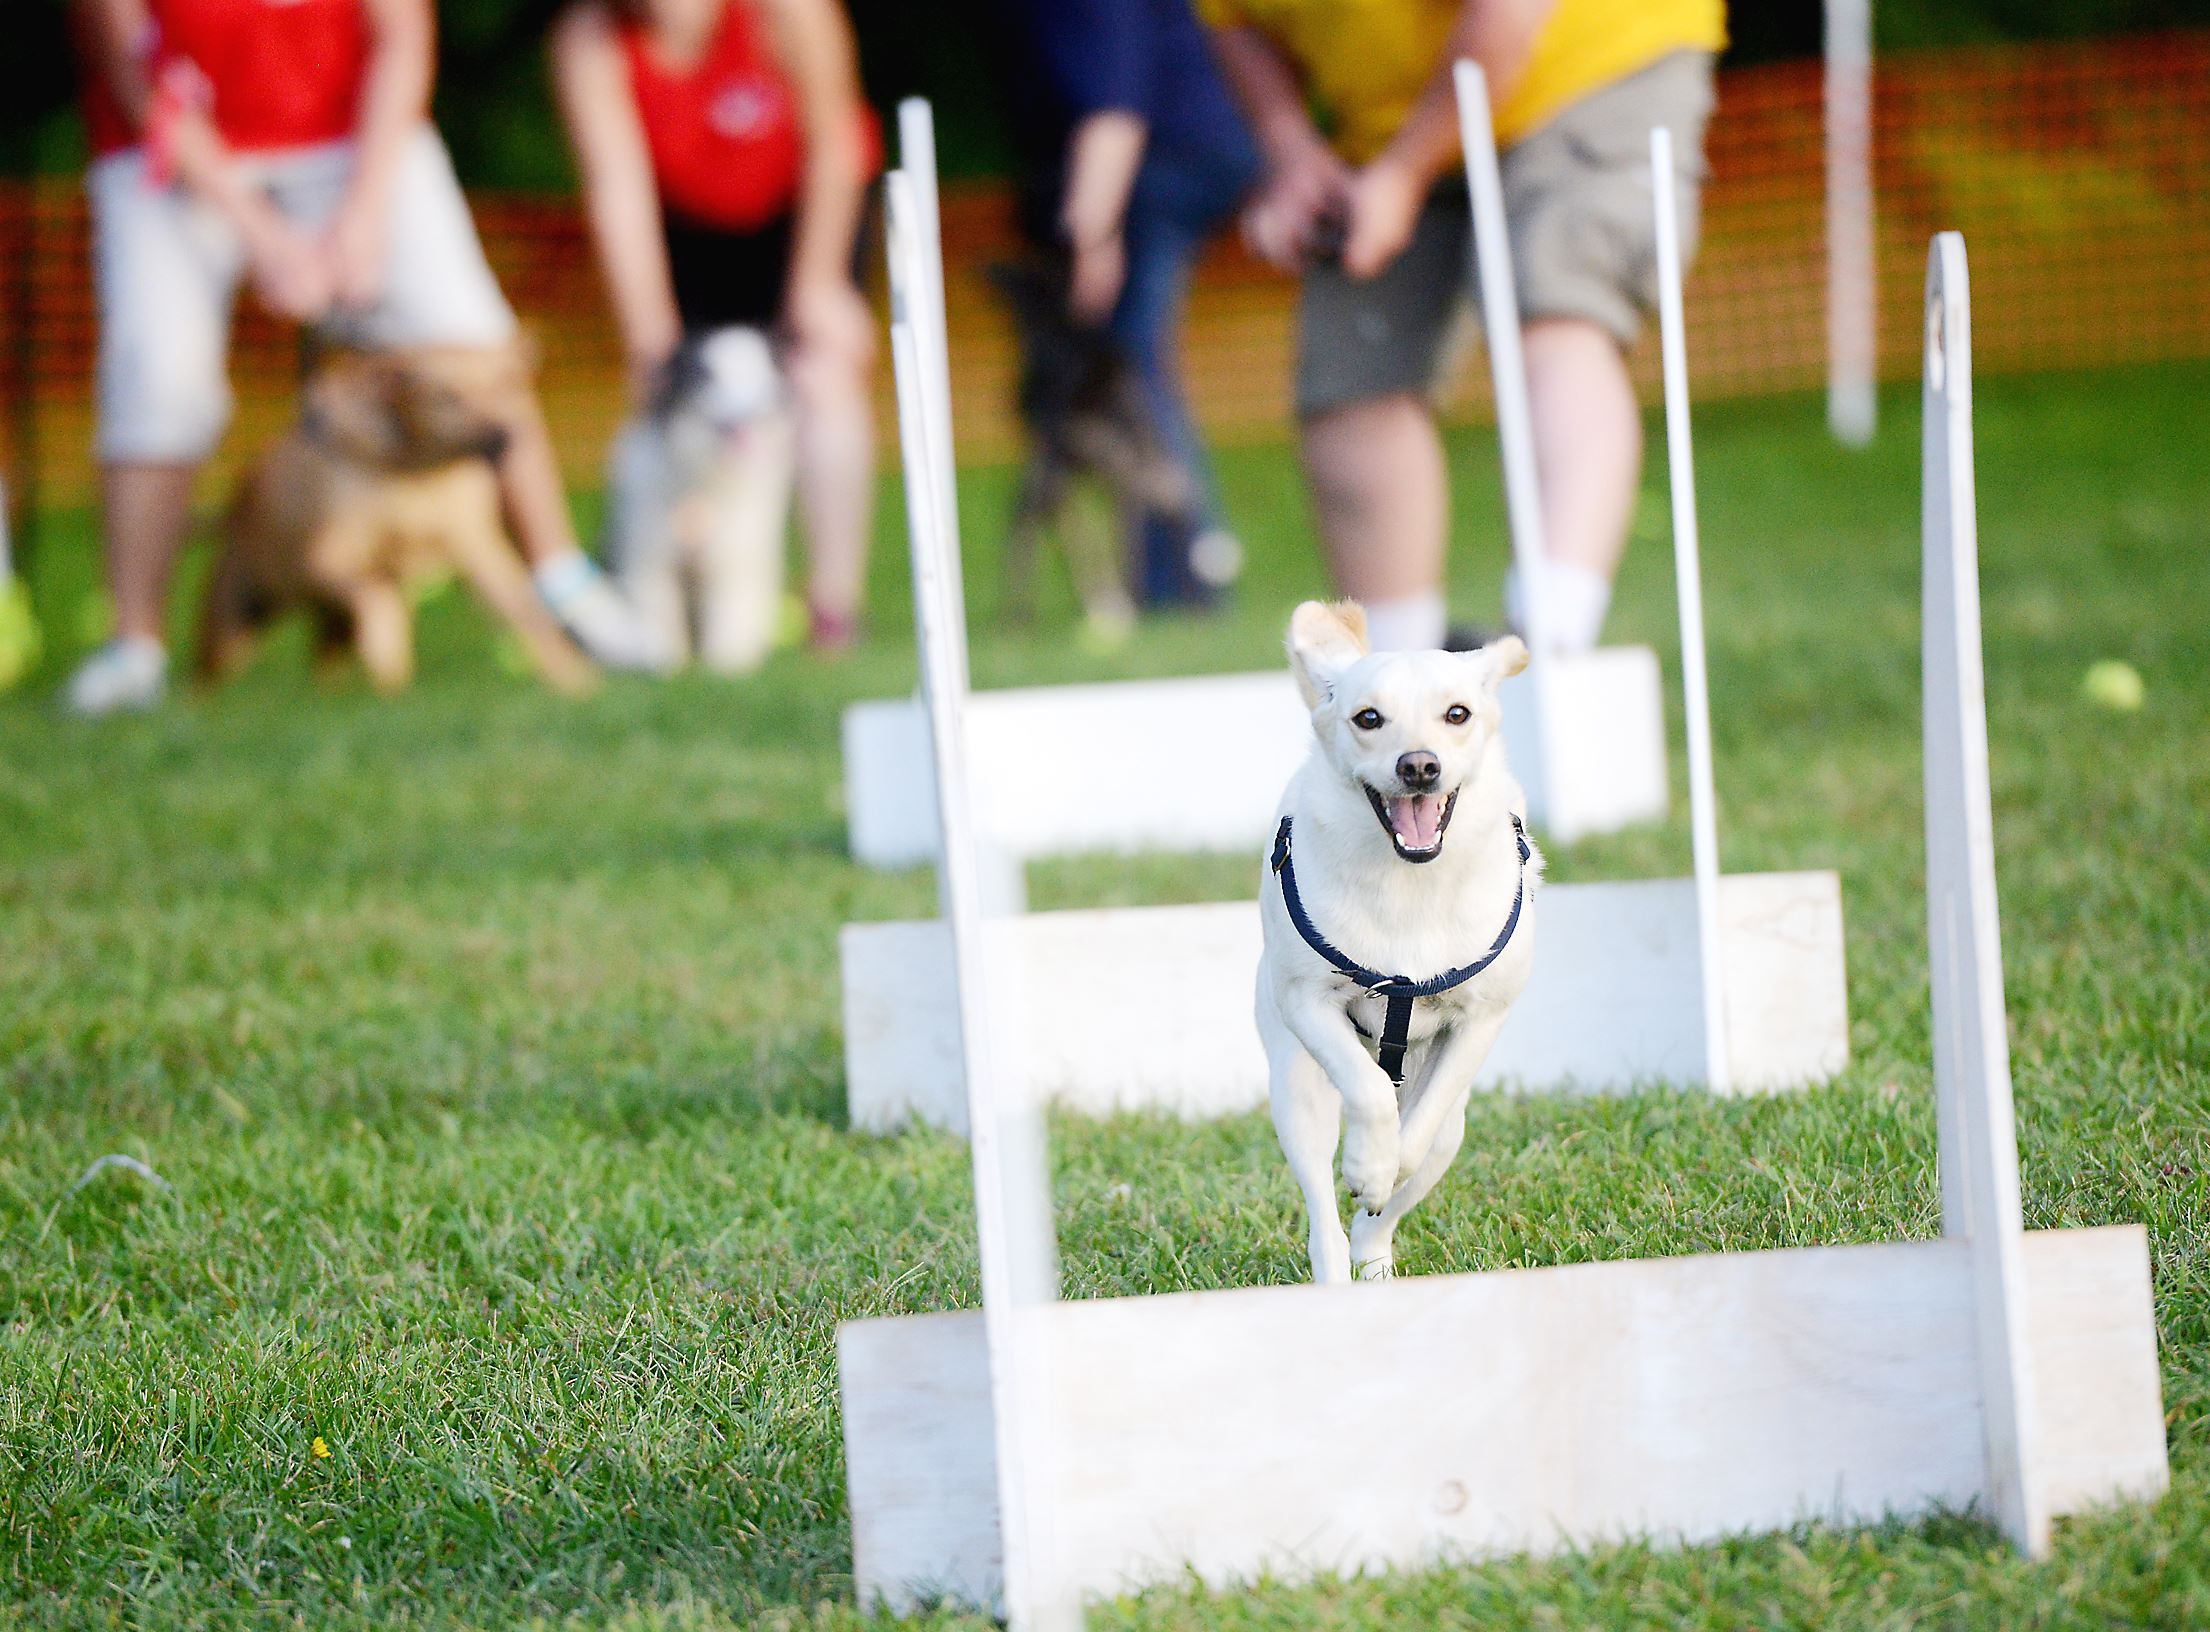 20140824ppPetTales1MAG Sandy, a 2-year-old Labrador-beagle mix, eyes the next hurdle during a practice Flyball match at the Splash 'n Dash K9 Sports demonstration during the Bark in the Dark Animal Friends fundraiser at Hartwood Acres. Flyball is played with two teams of four dogs with each dog taking turns running over hurdles grabbing a ball and returning to their starting point when the next dog takes his turn. The team that finishes the course fastest wins. Sandy lives with her human companion Chris Gill from Pleasant Hills.